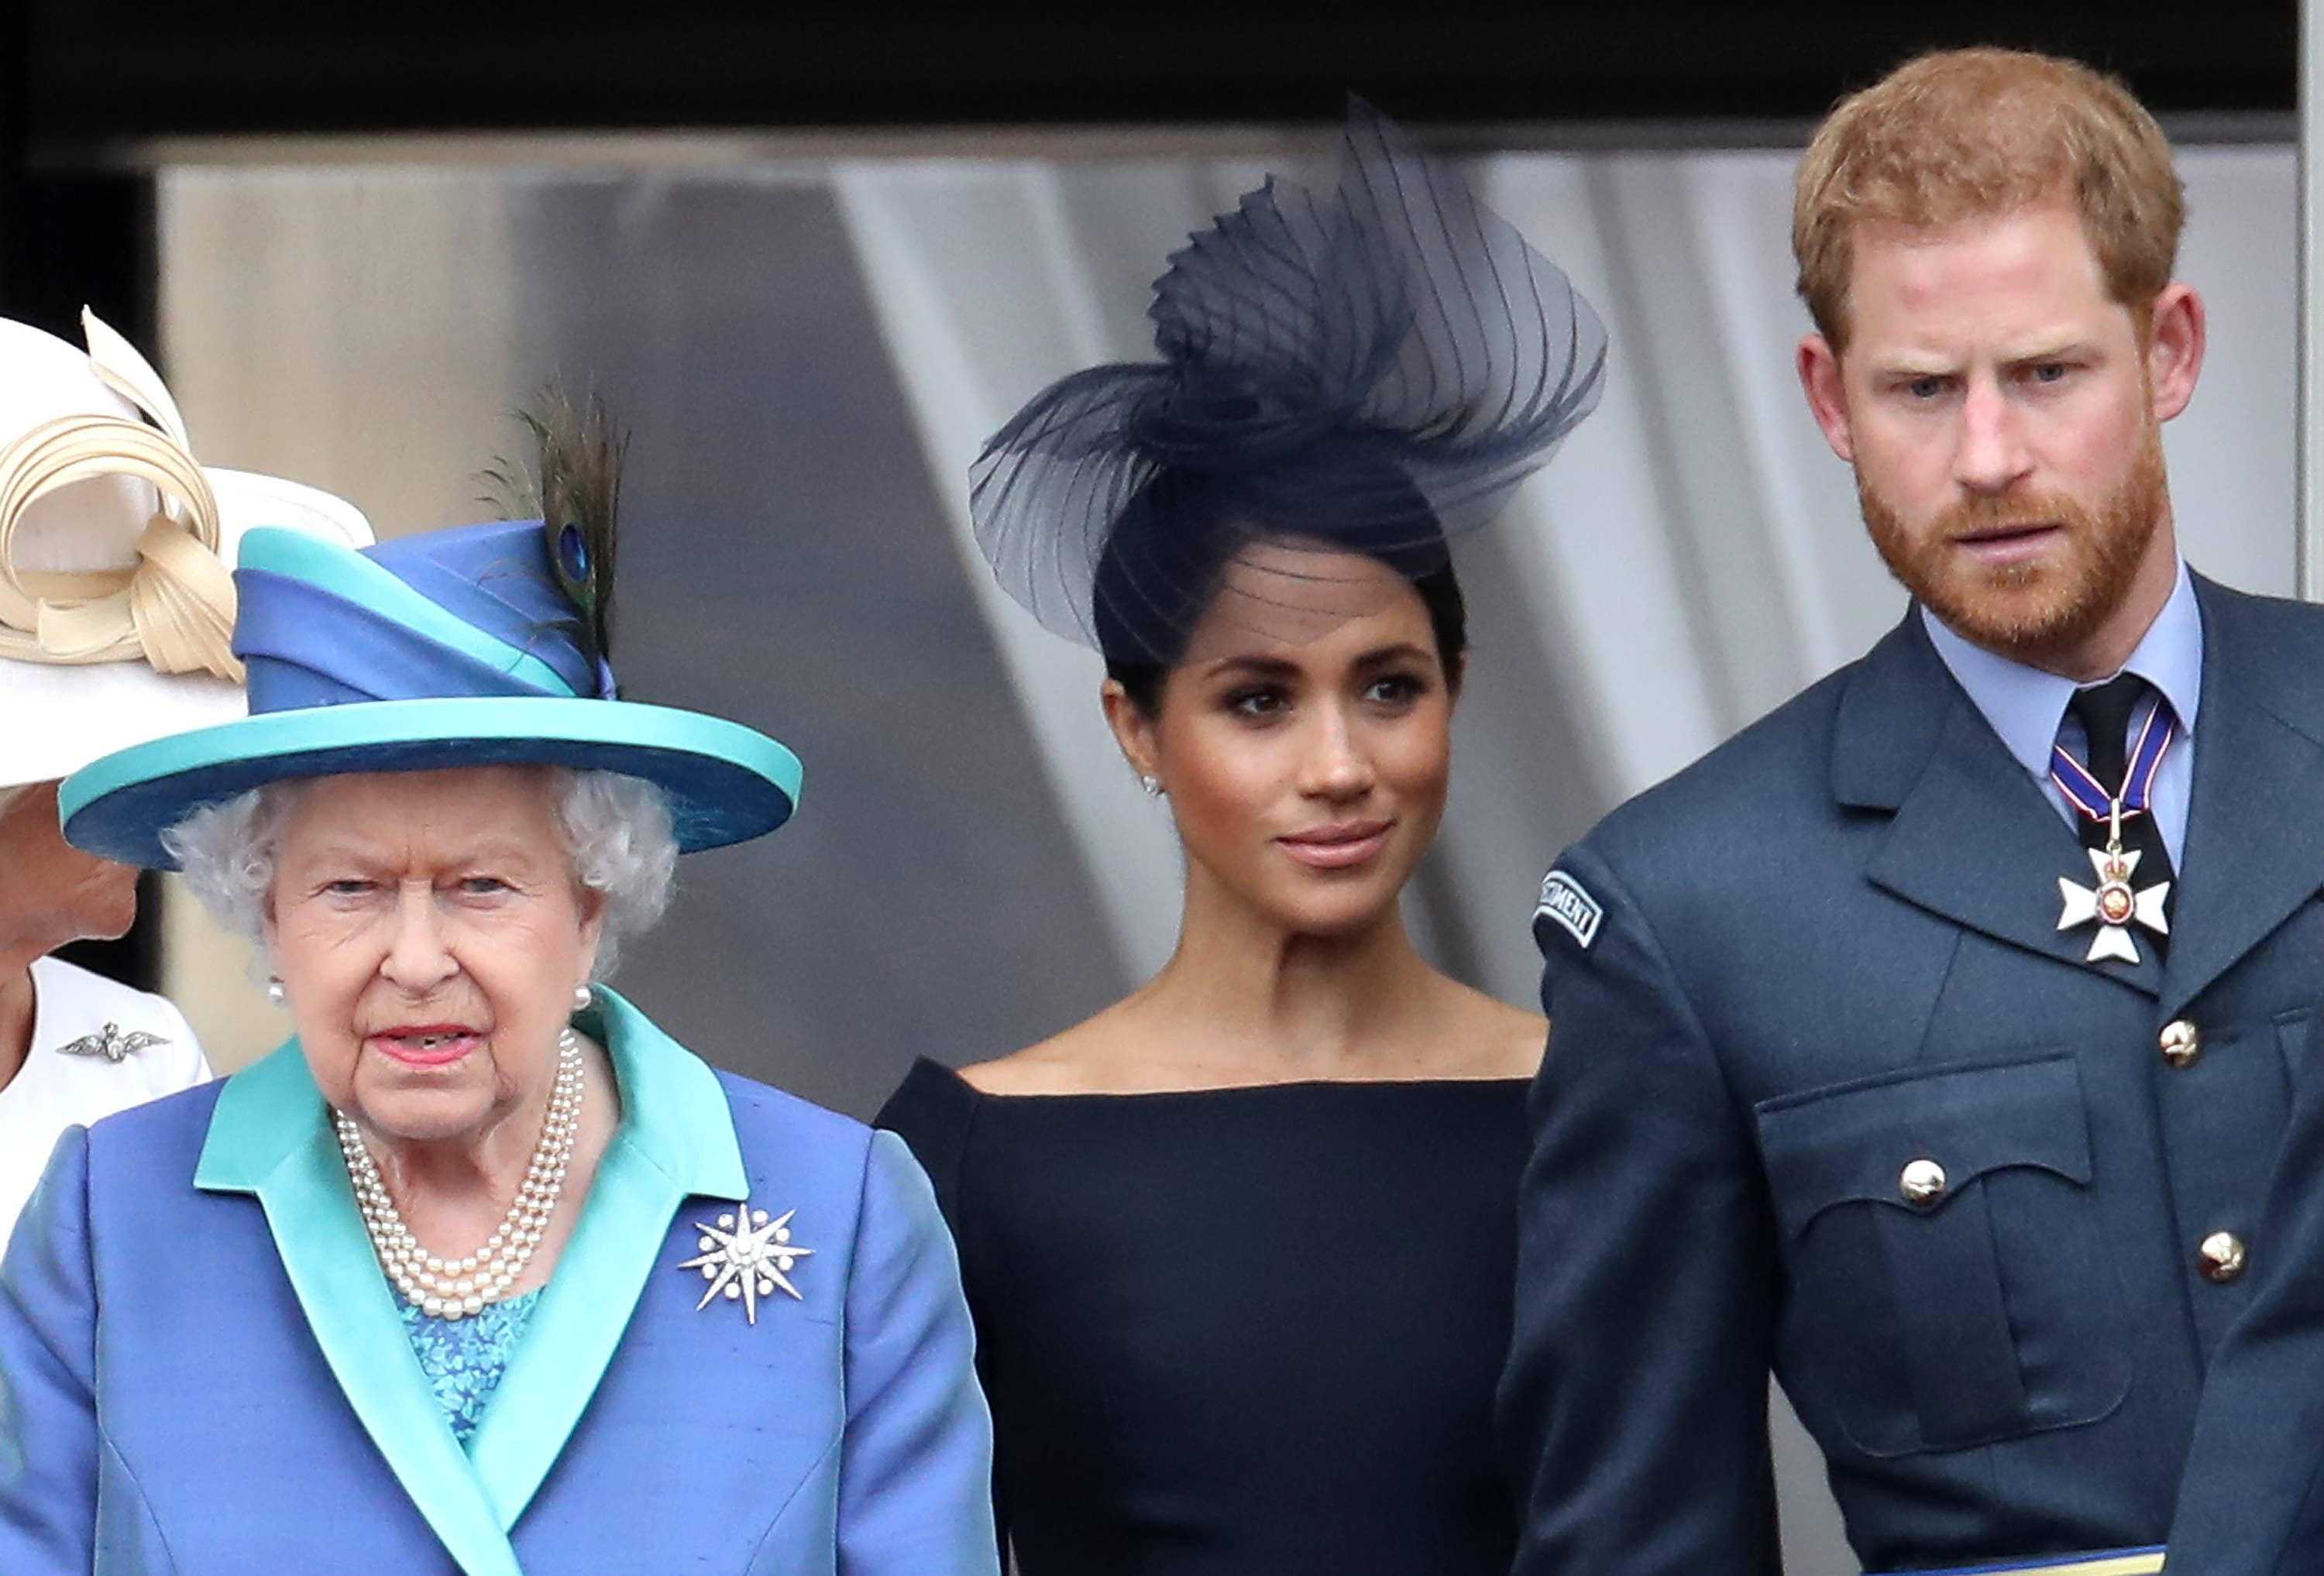 The Queen Says She's Concerned By Meghan And Harry's Racism Allegations